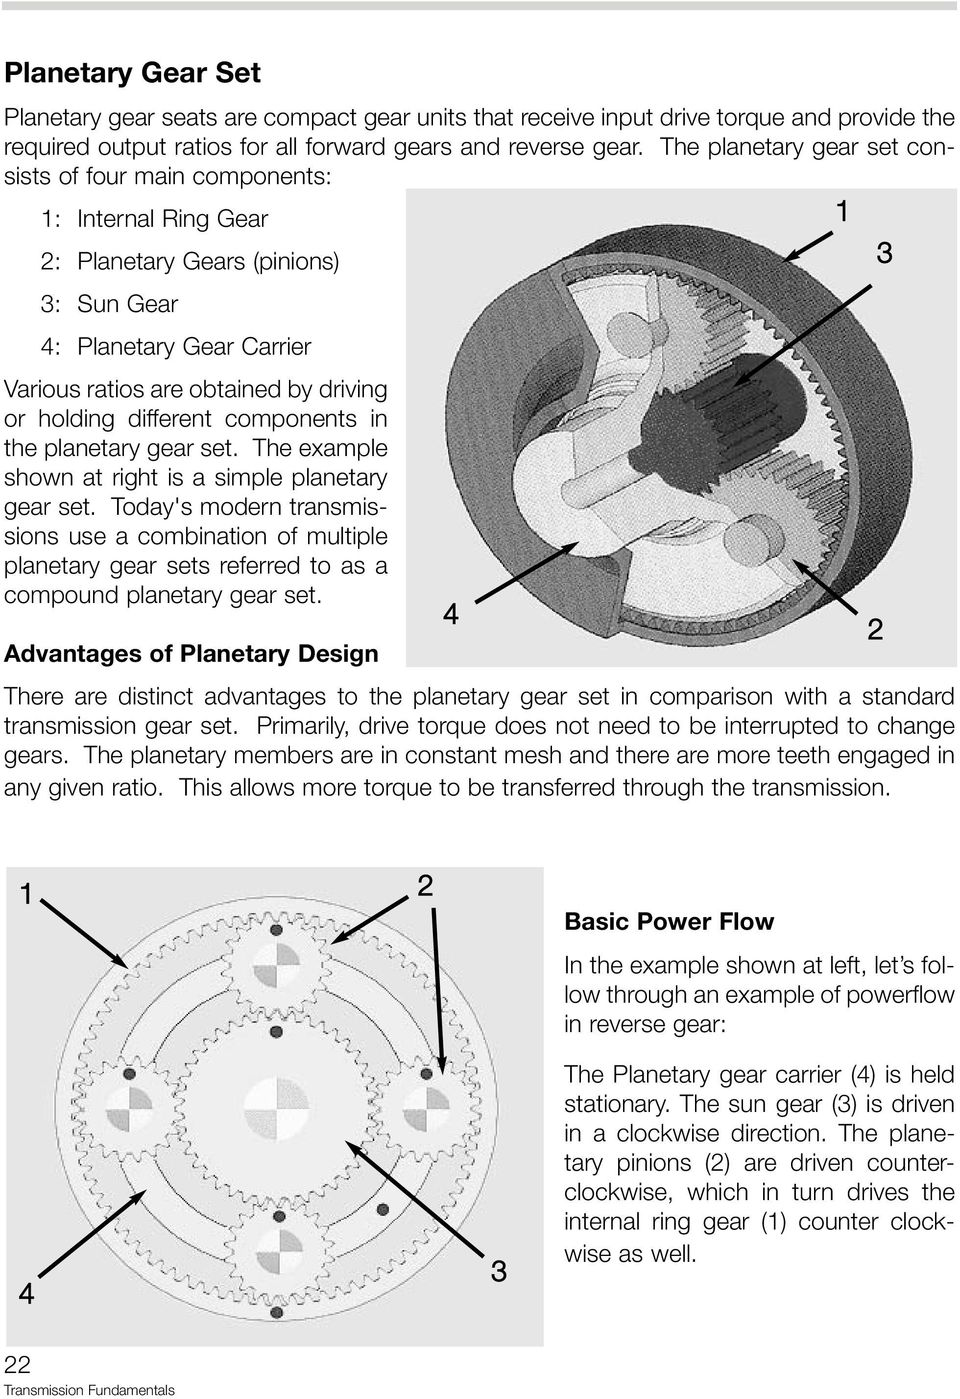 Table of contents transmission fundamentals pdf different components in the planetary gear set the example shown at right is a simple fandeluxe Gallery